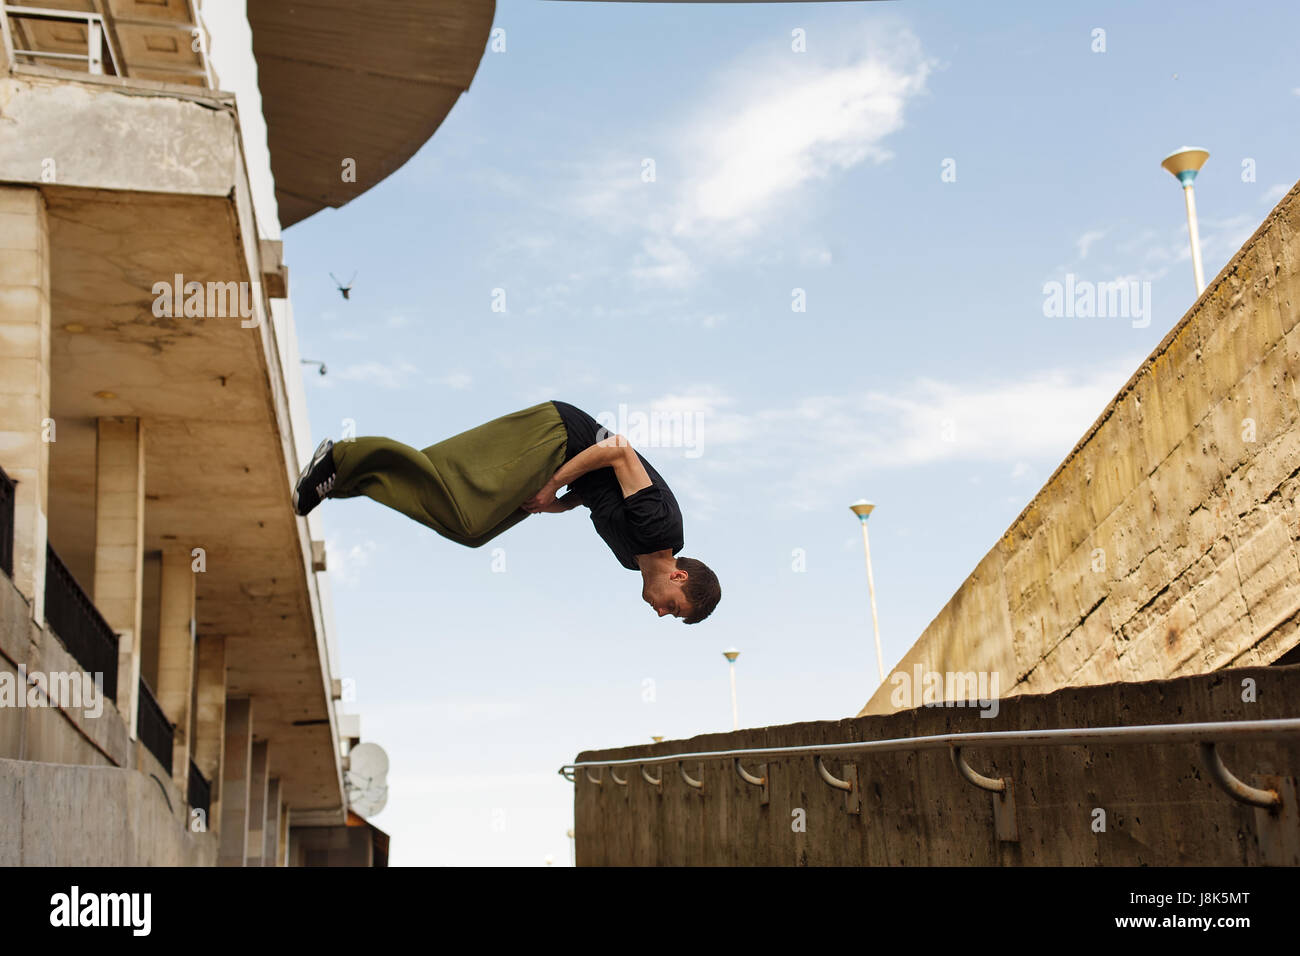 Young man back flip. Parkour in the urban space. Sport in the city. Sport Activities outdoors. - Stock Image